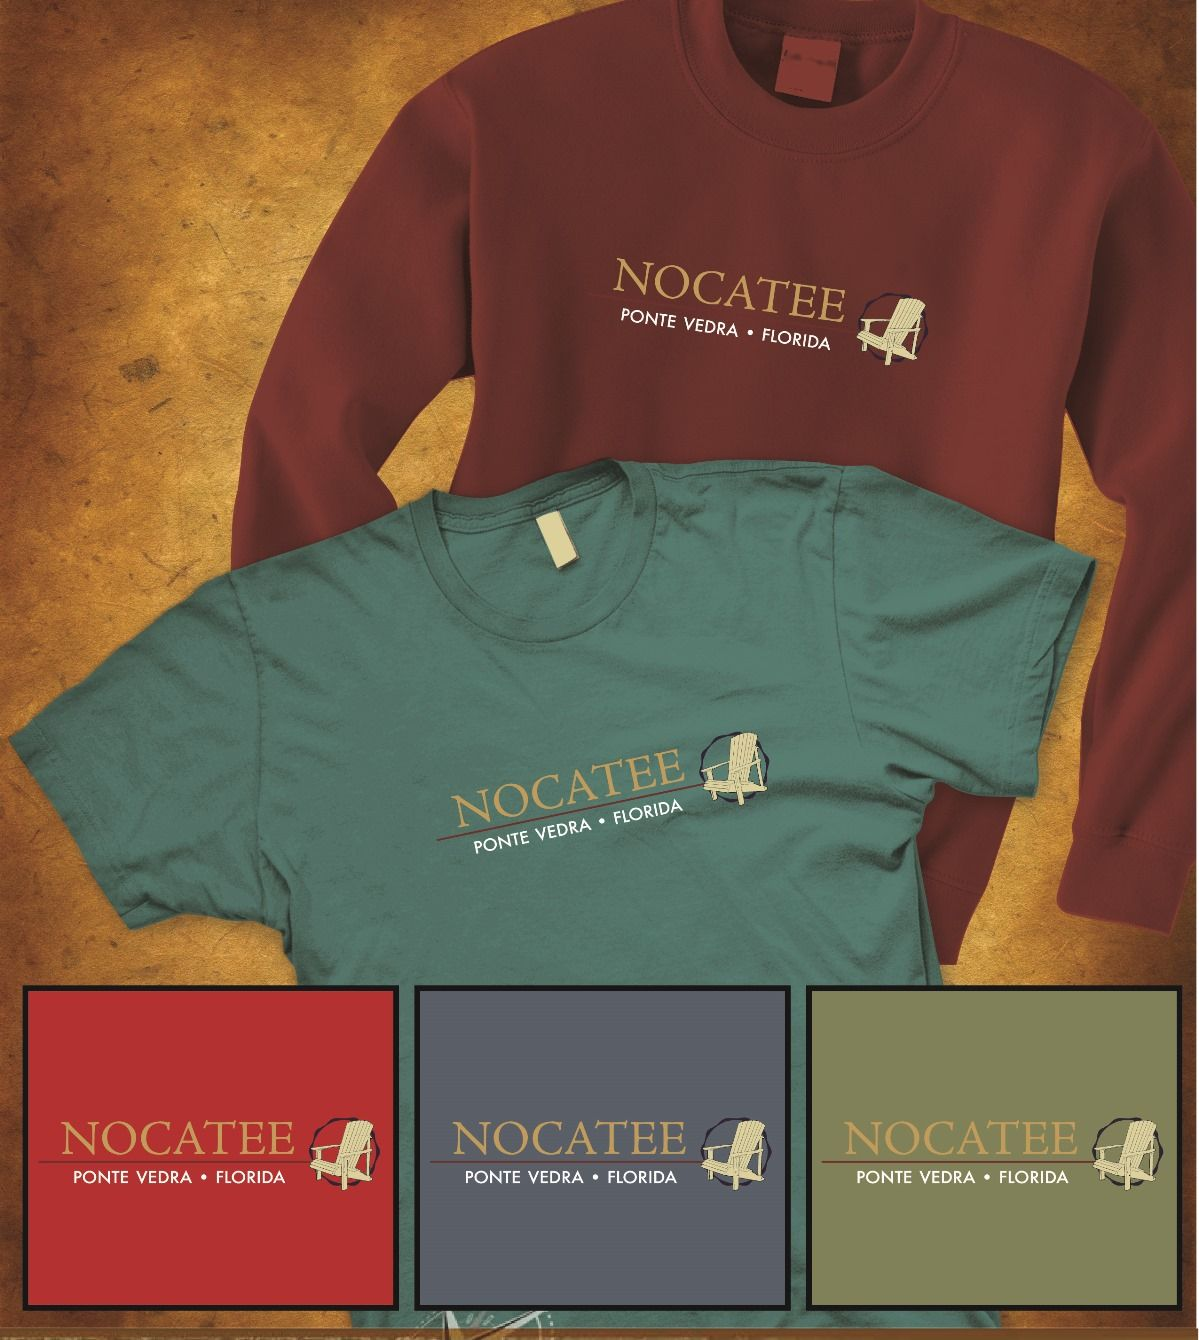 Newest Nocatee Apparel Now at the Nocatee Publix Long